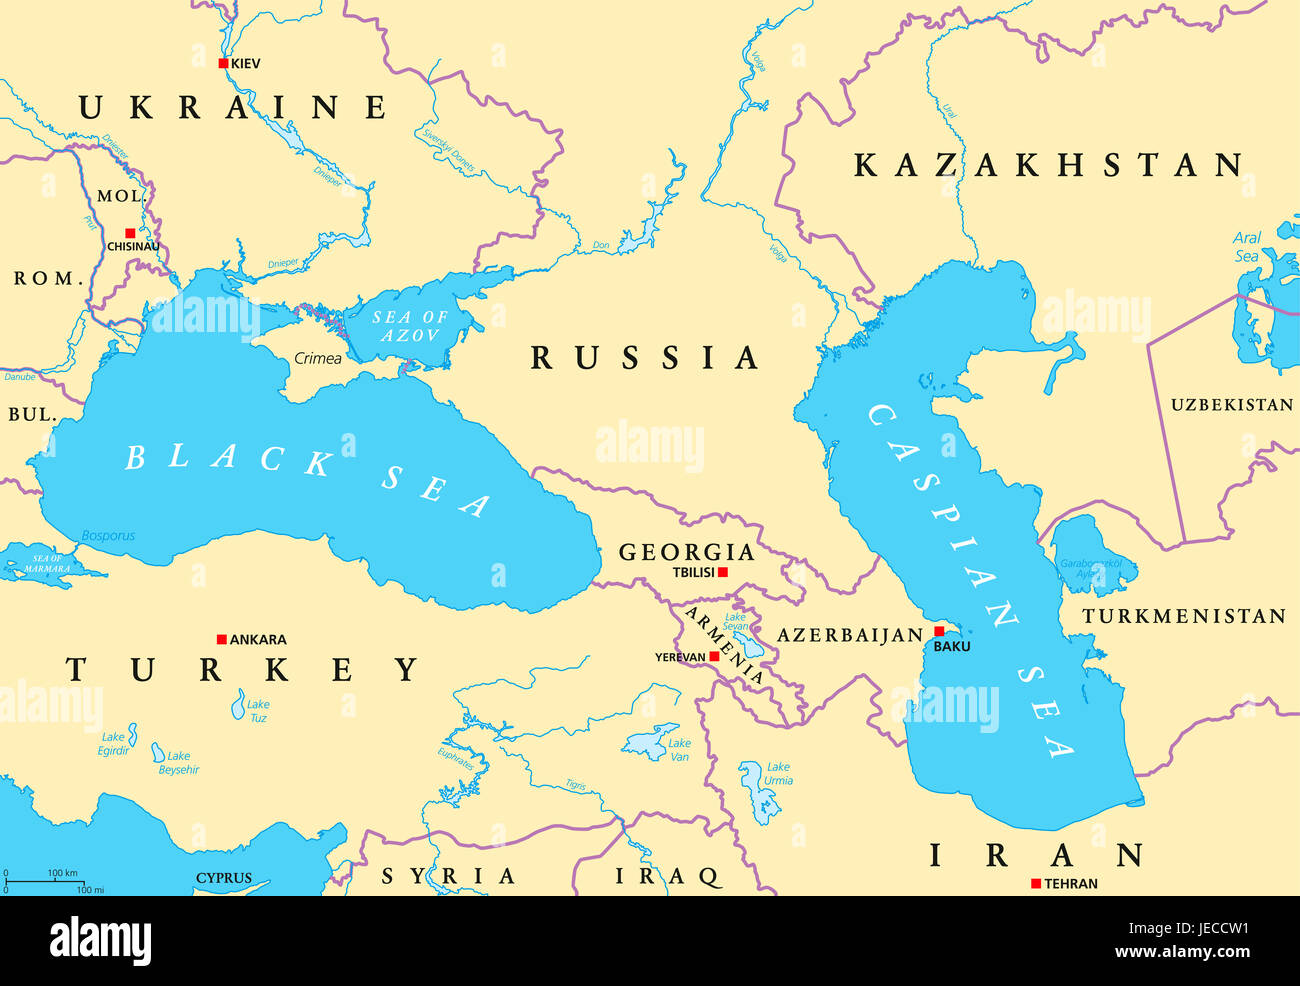 Map Of Caspian Sea Black Sea and Caspian Sea region political map with capitals Stock  Map Of Caspian Sea